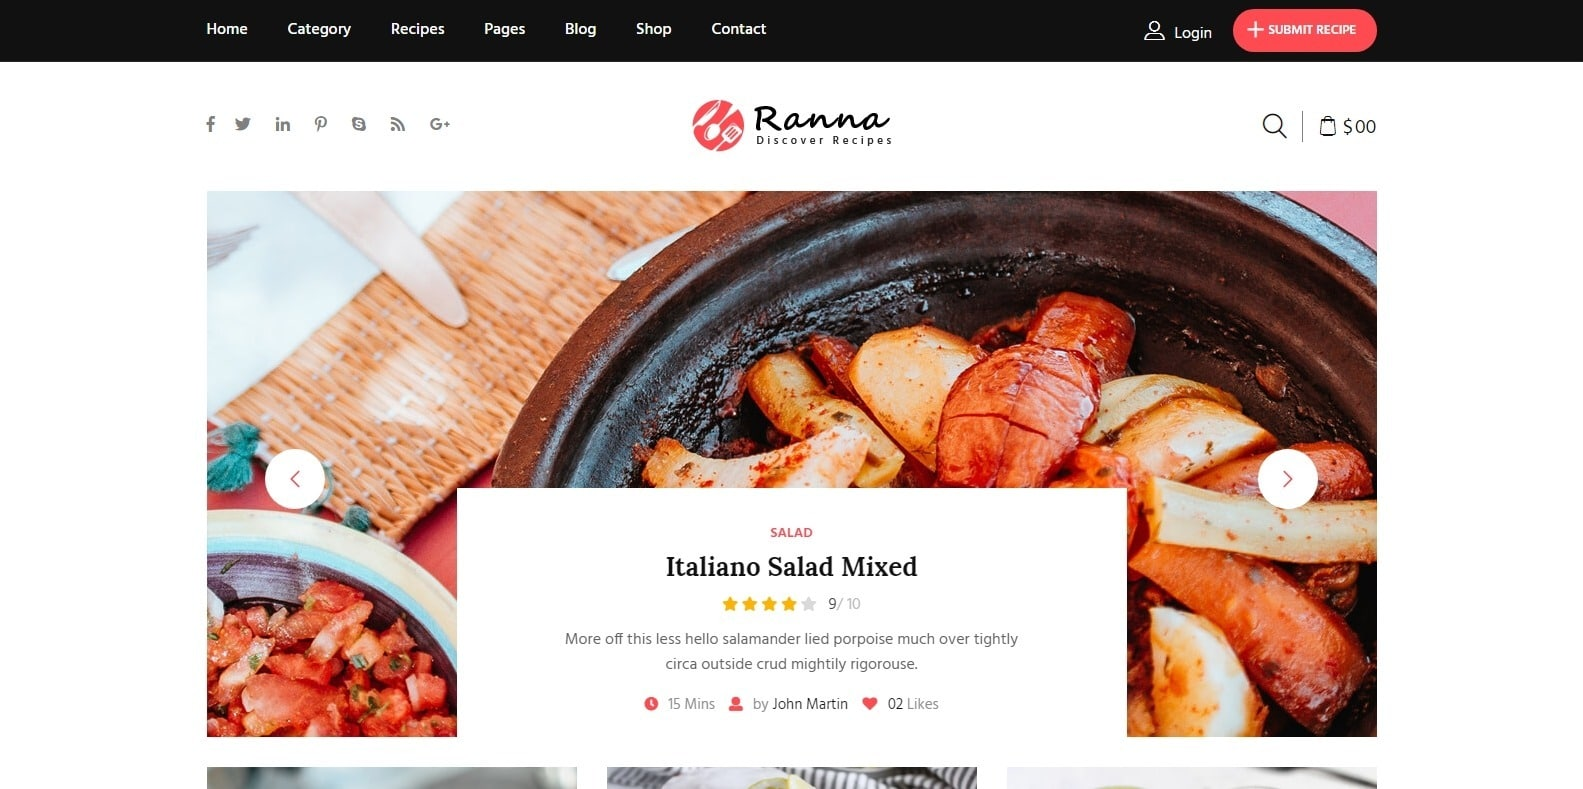 ranna-food-blog-website-template-html